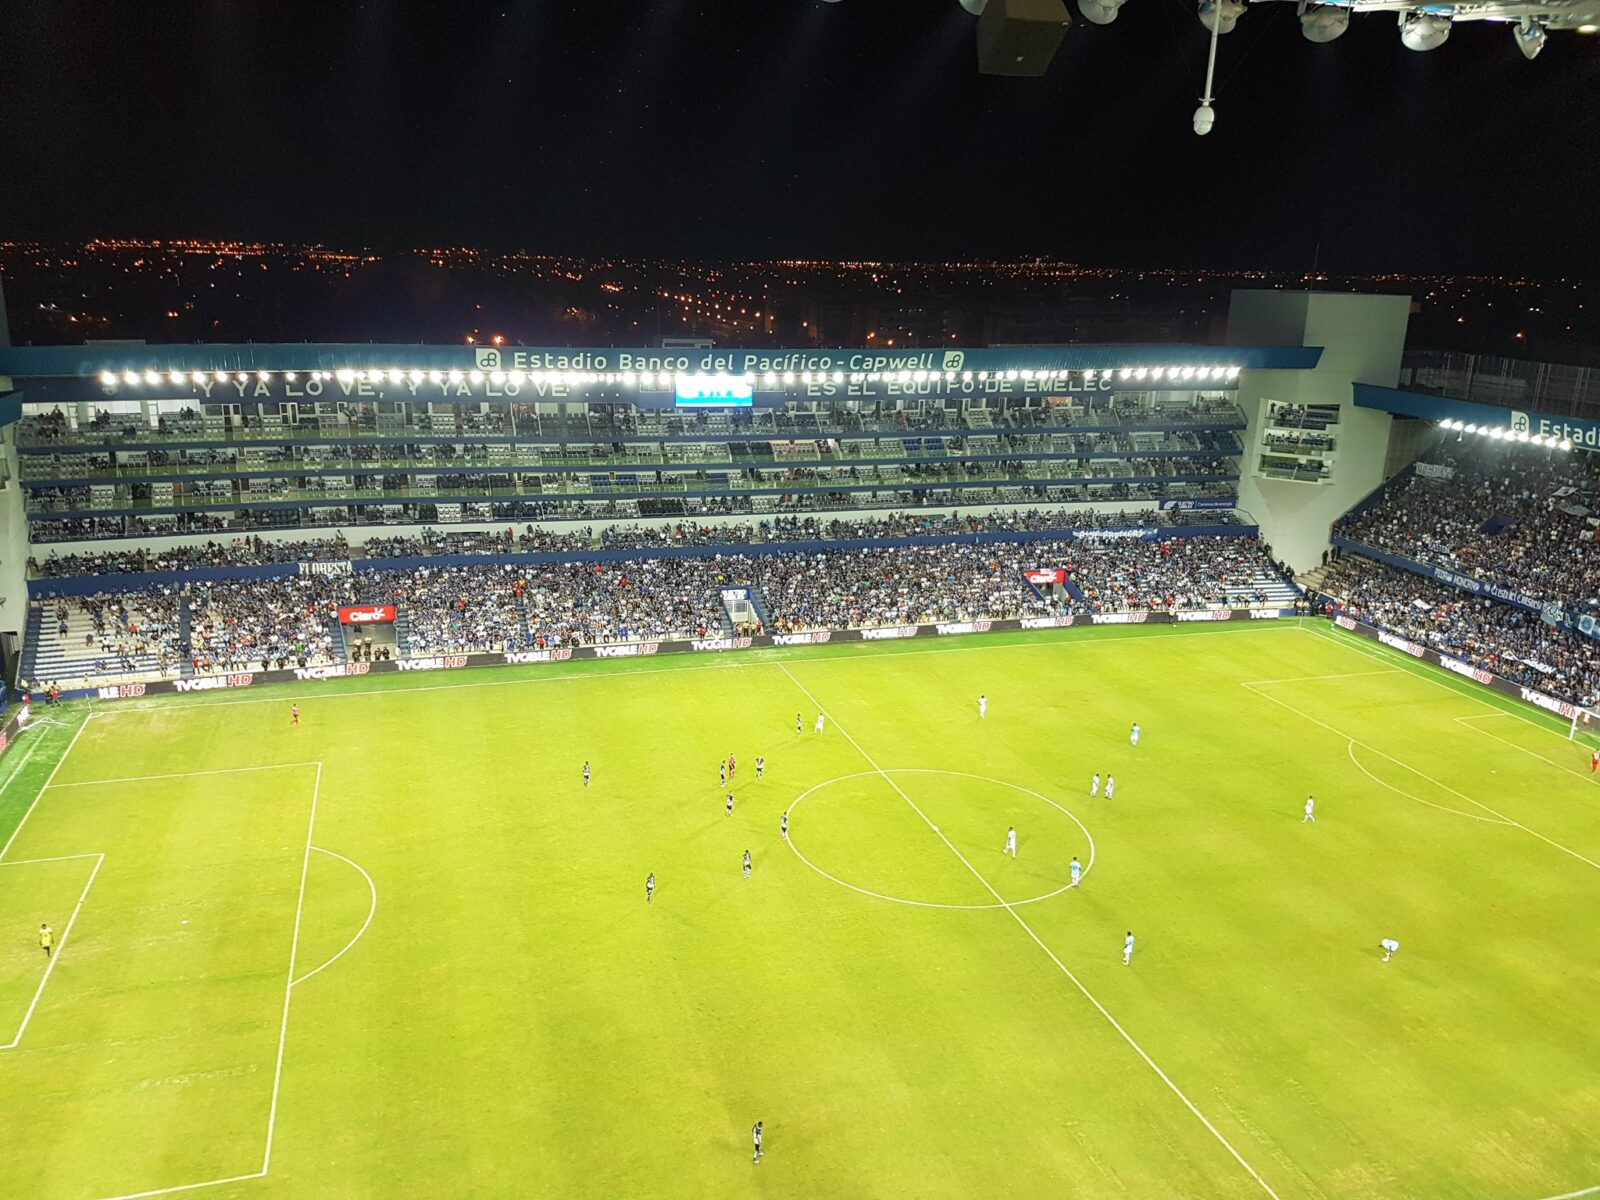 estadio capwell